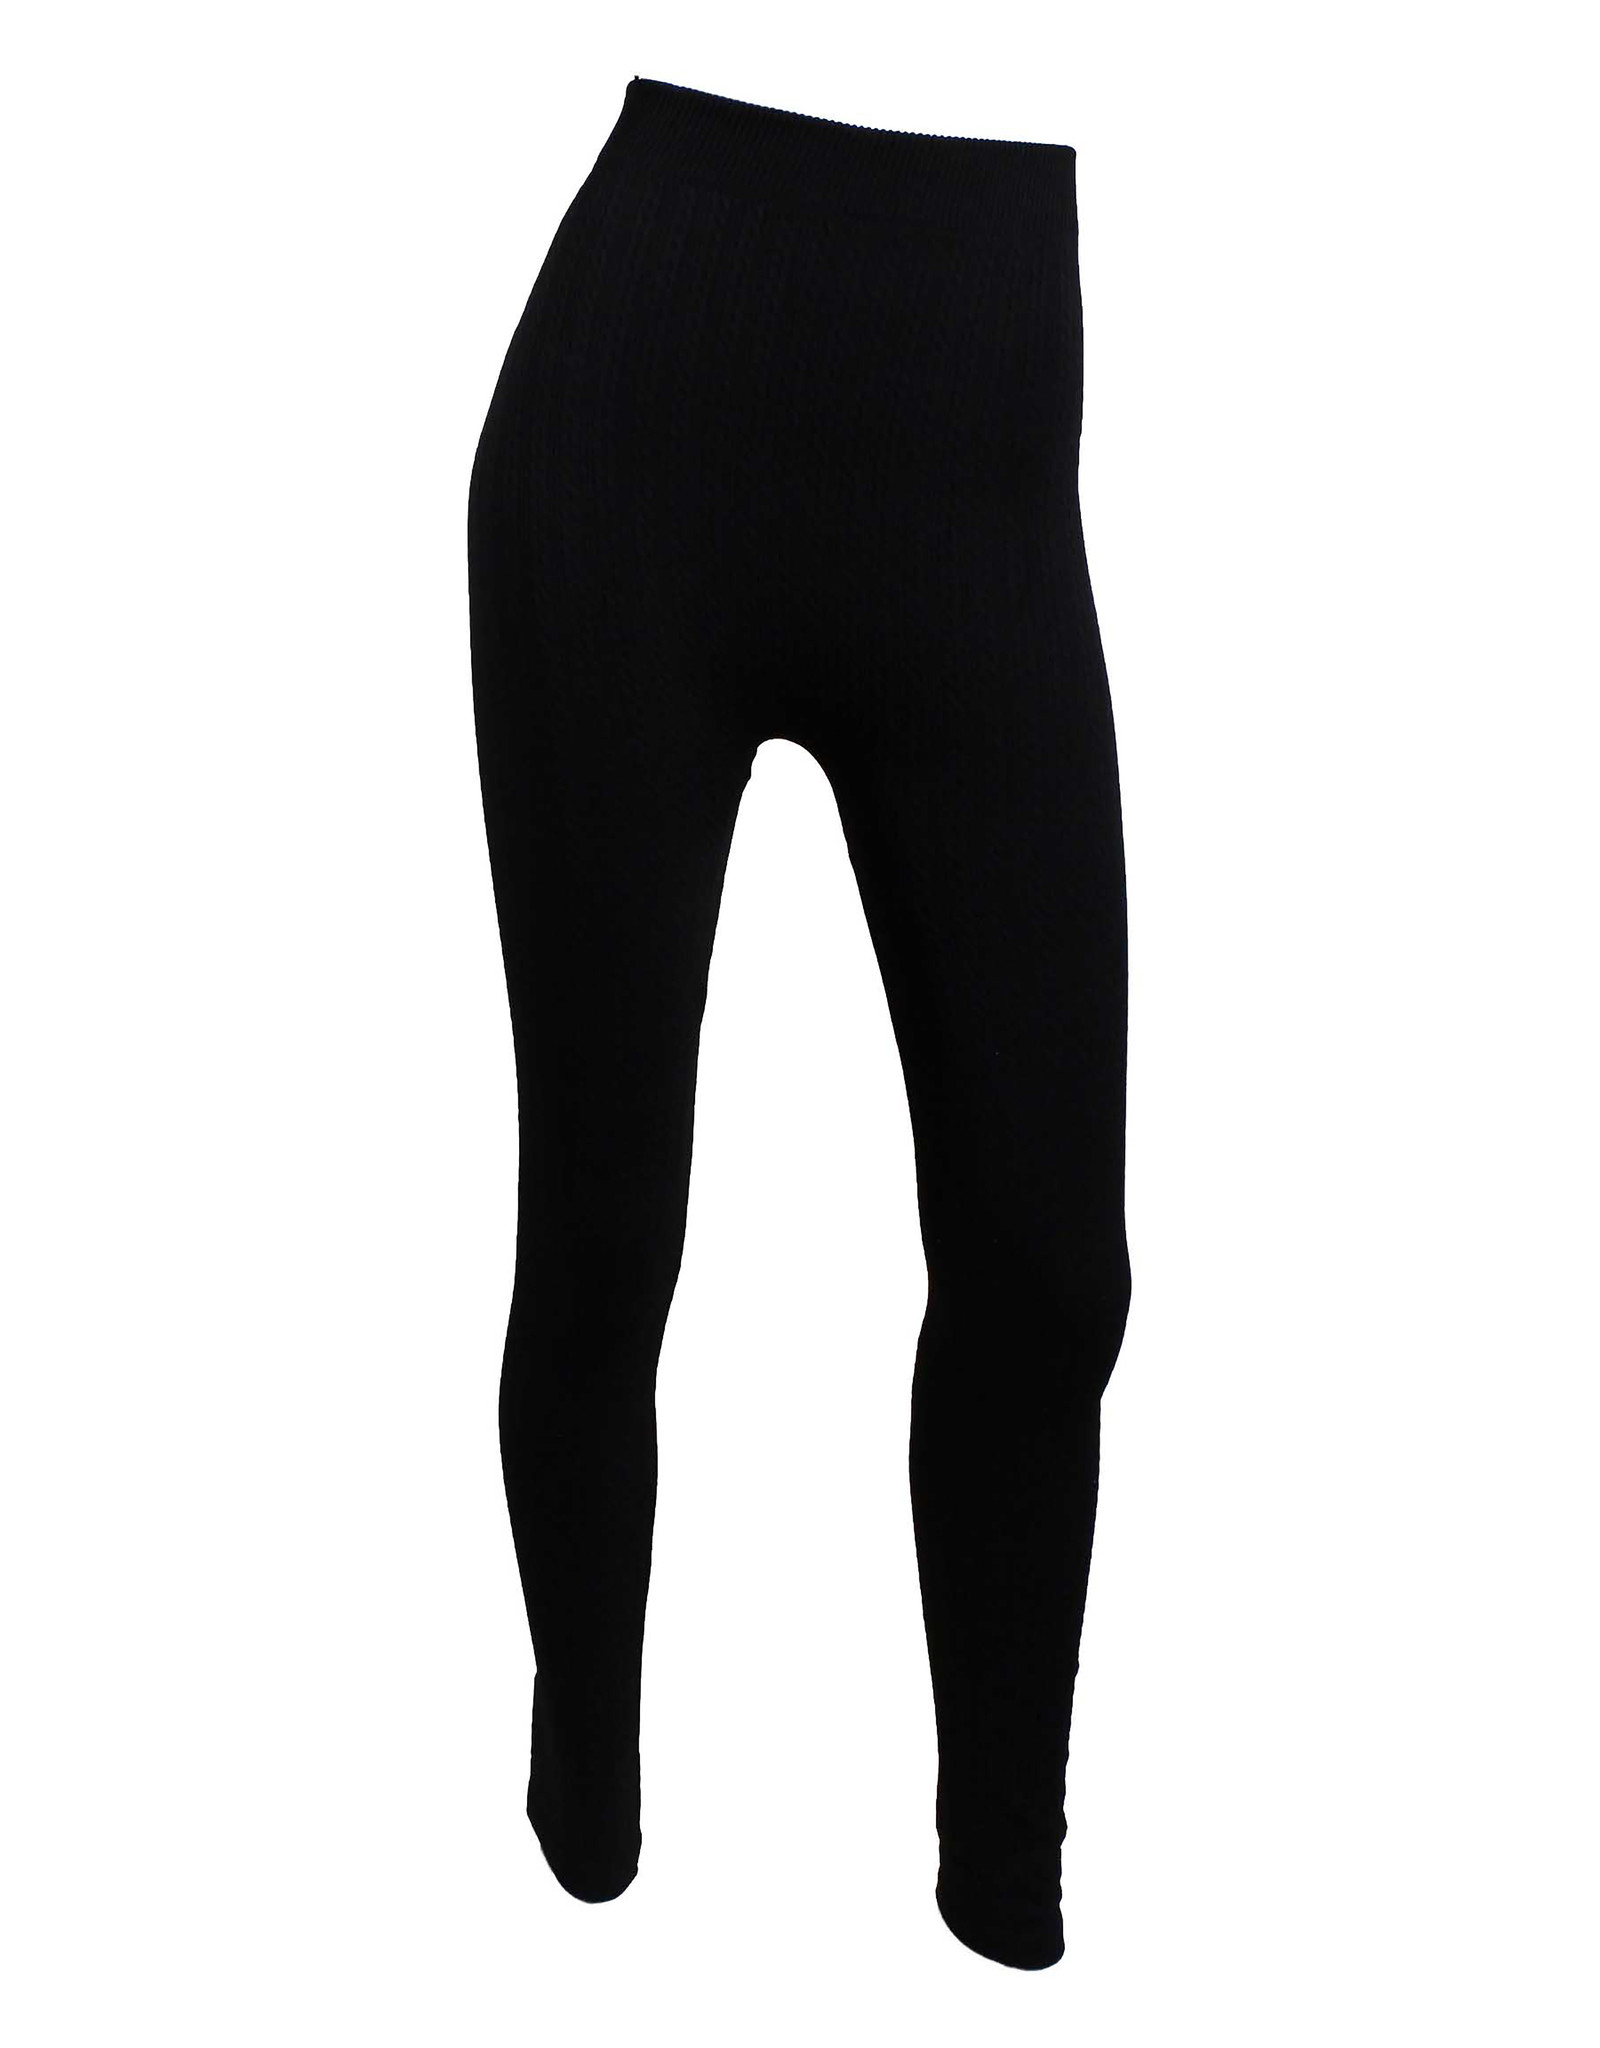 GOLD MEDAL Women's Black Leggings